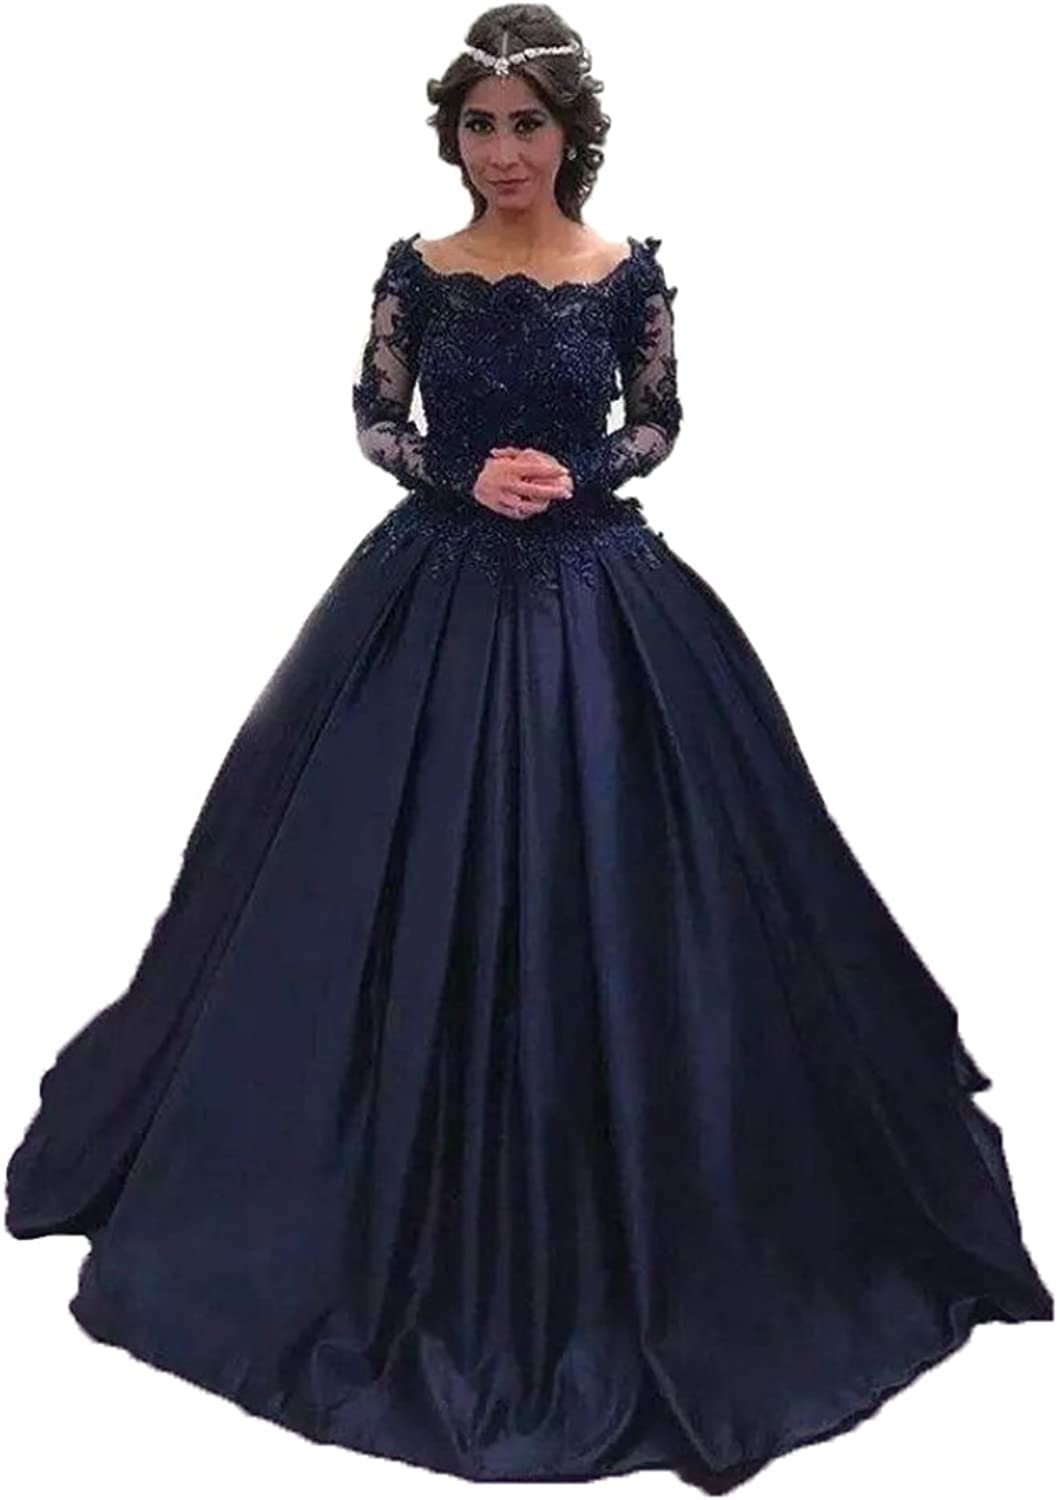 Alexzendra Ball Gown Evening Dress For Women Formal Long Prom Dress With Long Sleeves Navy bluee